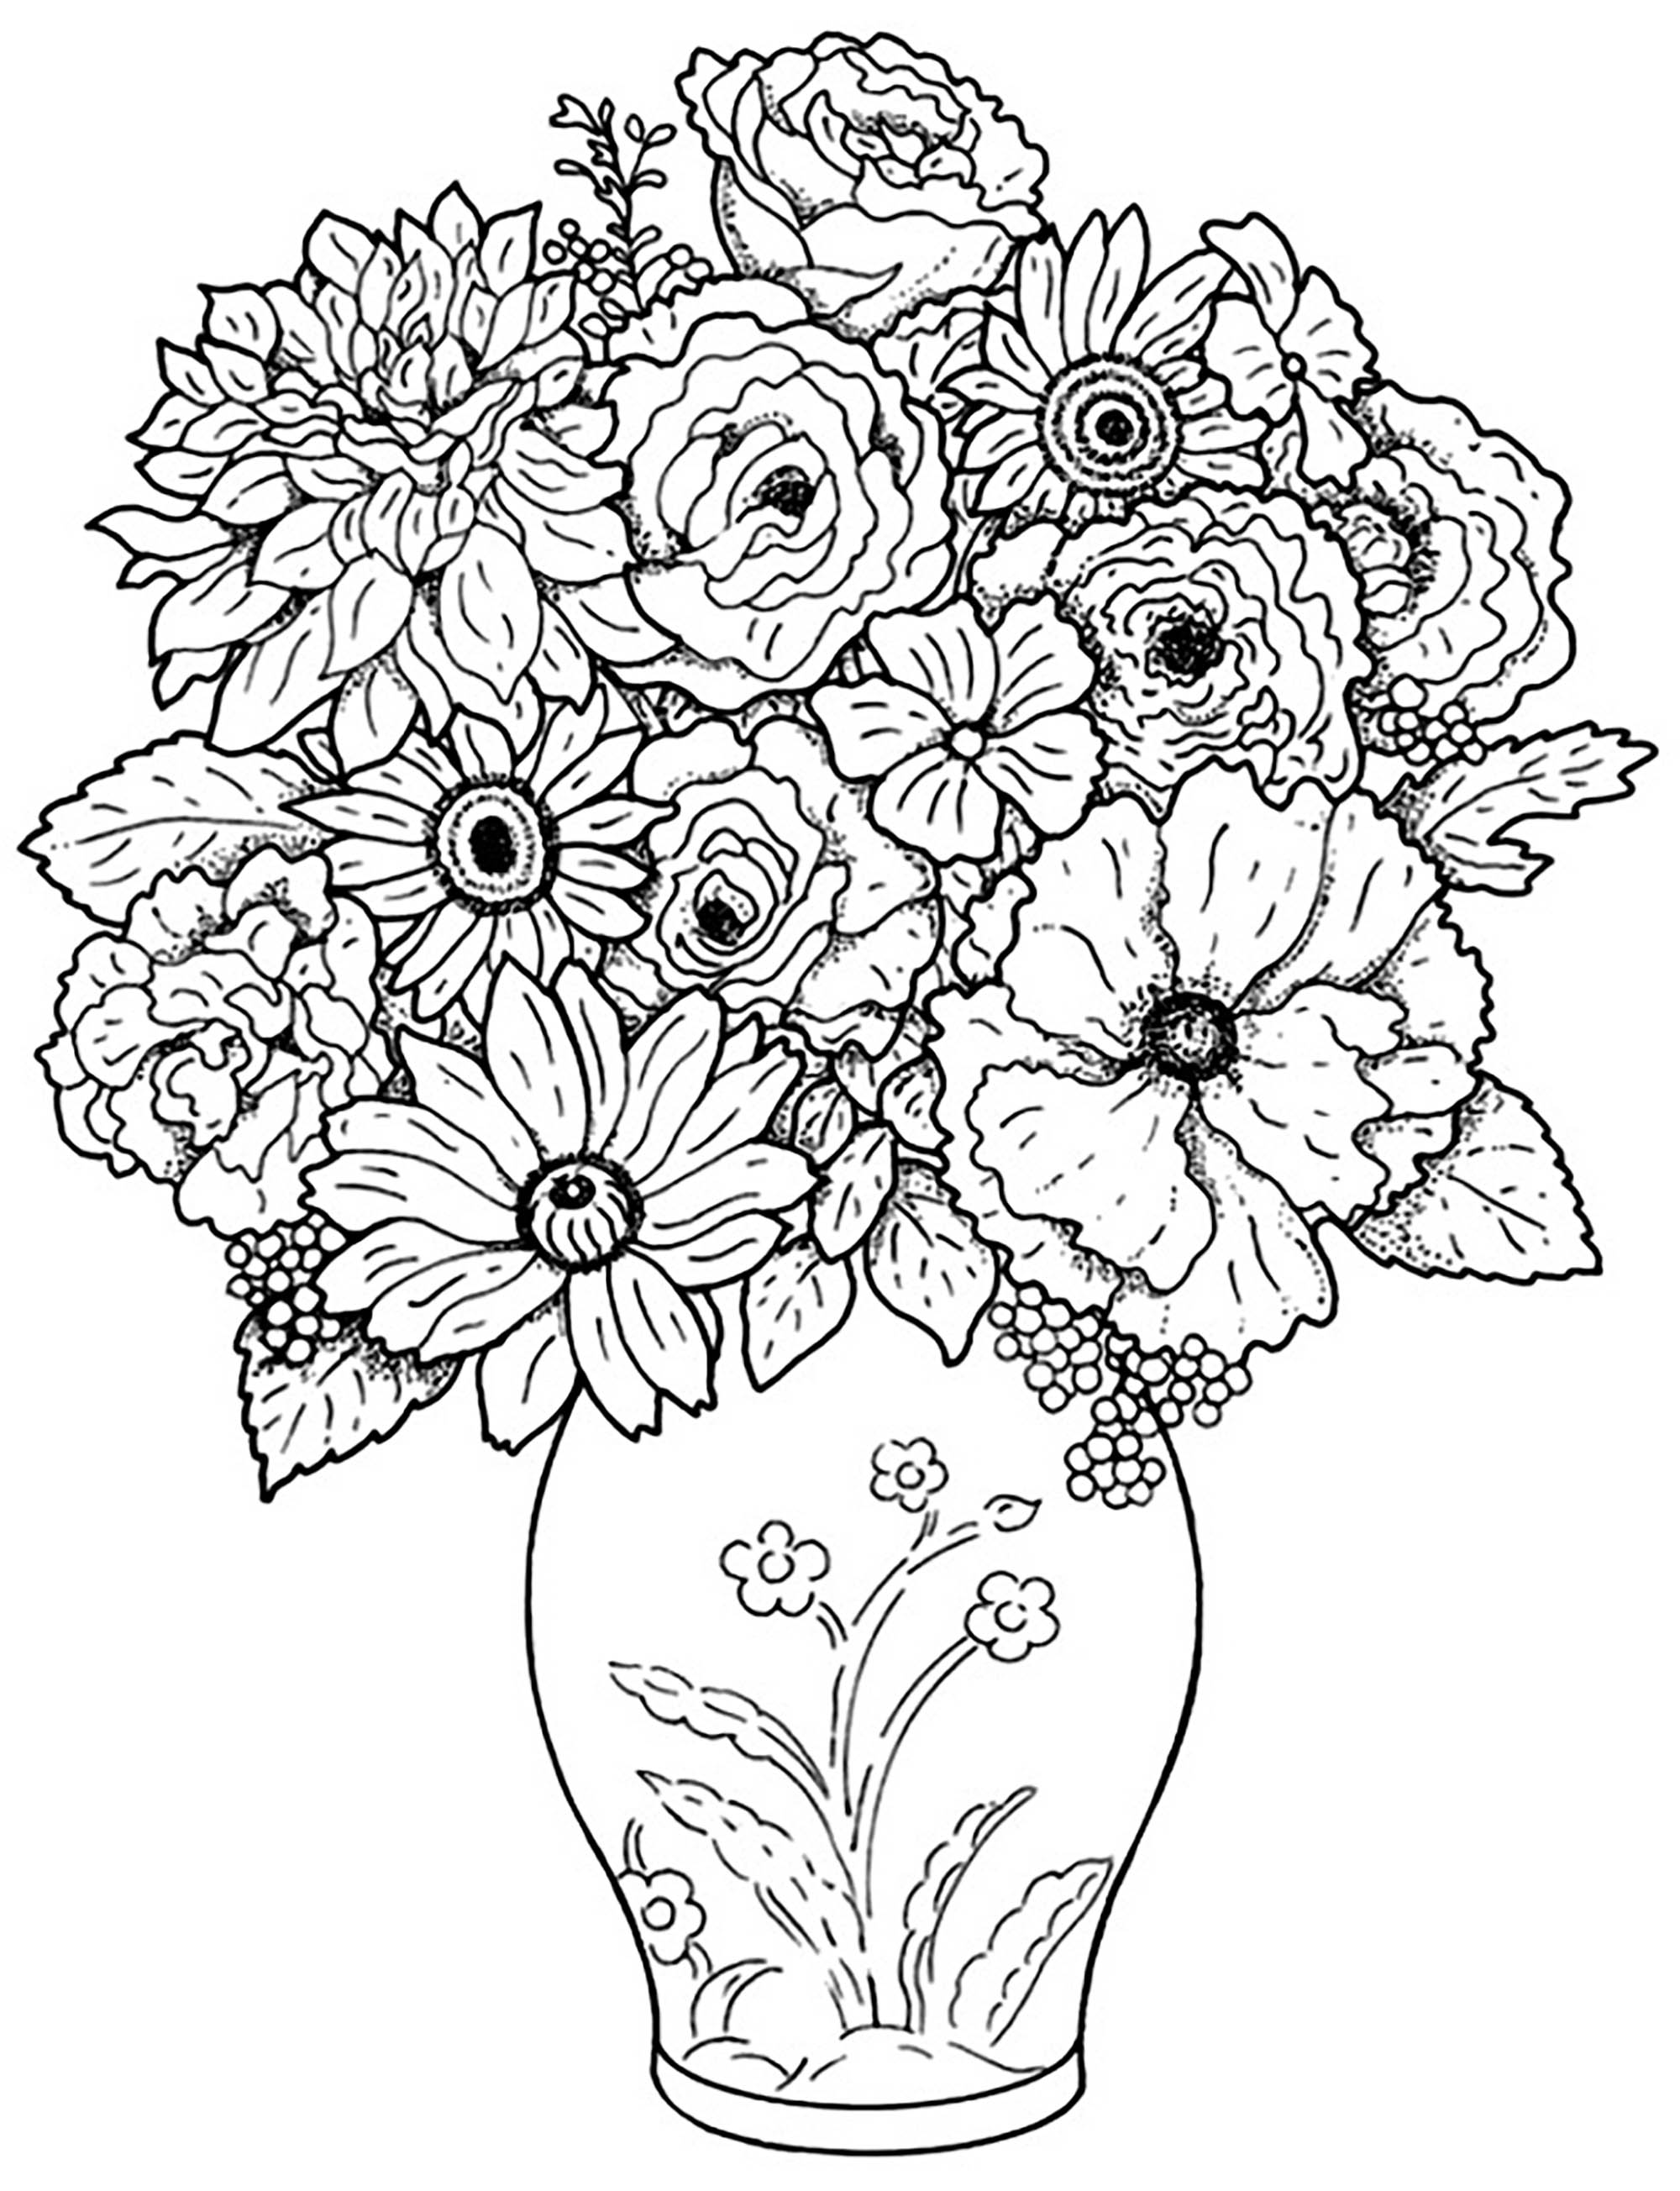 color page flower free easy to print flower coloring pages tulamama color flower page